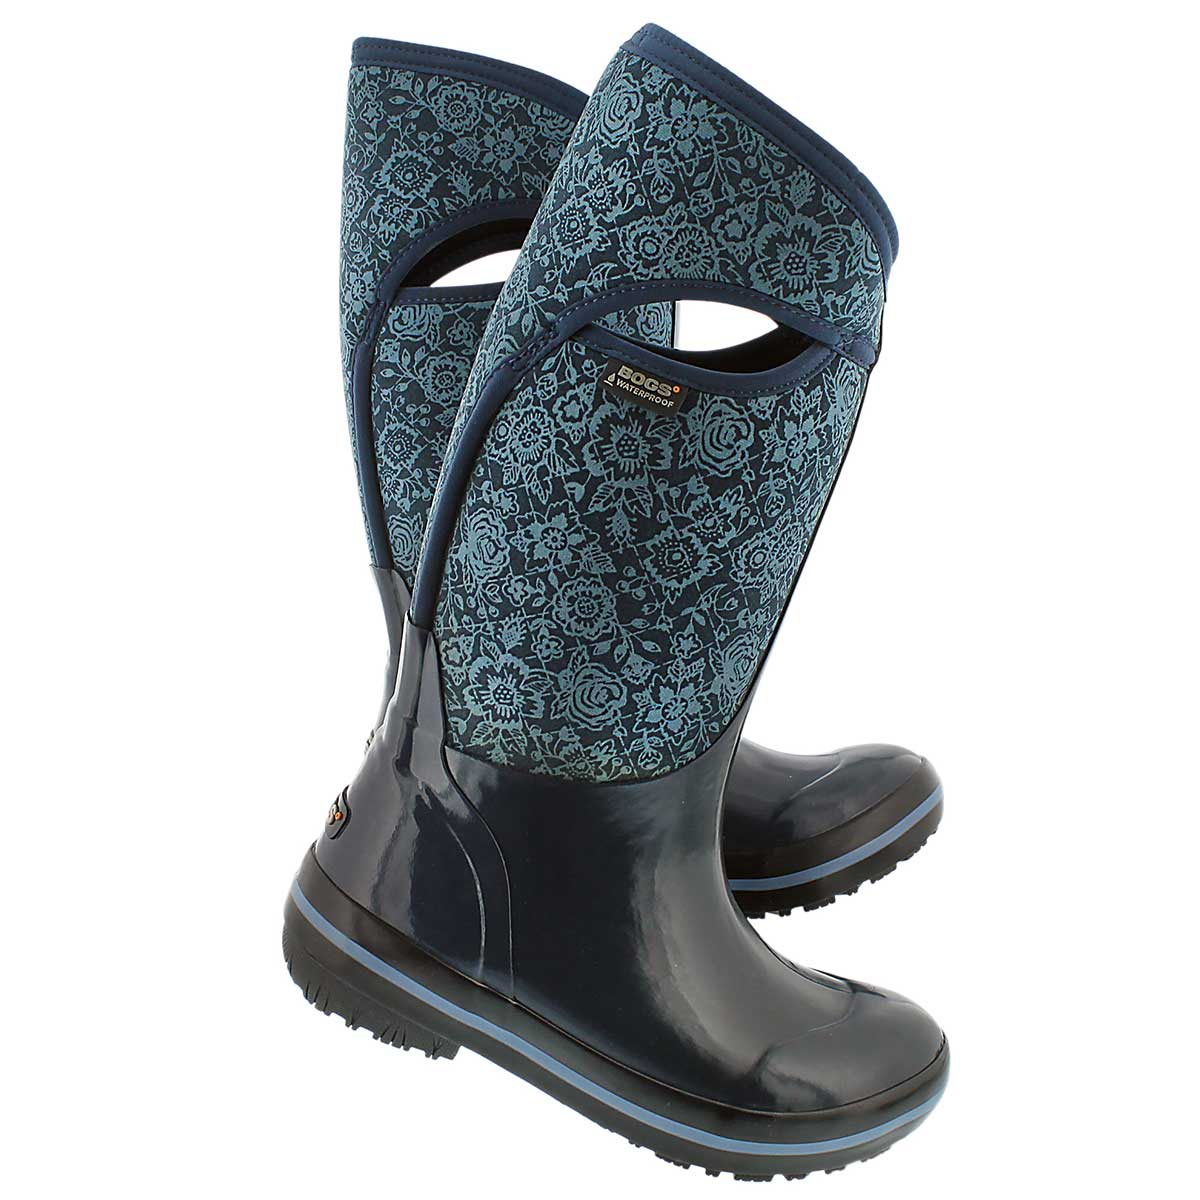 Lds Plims Quilted Floral ind wtpf boot